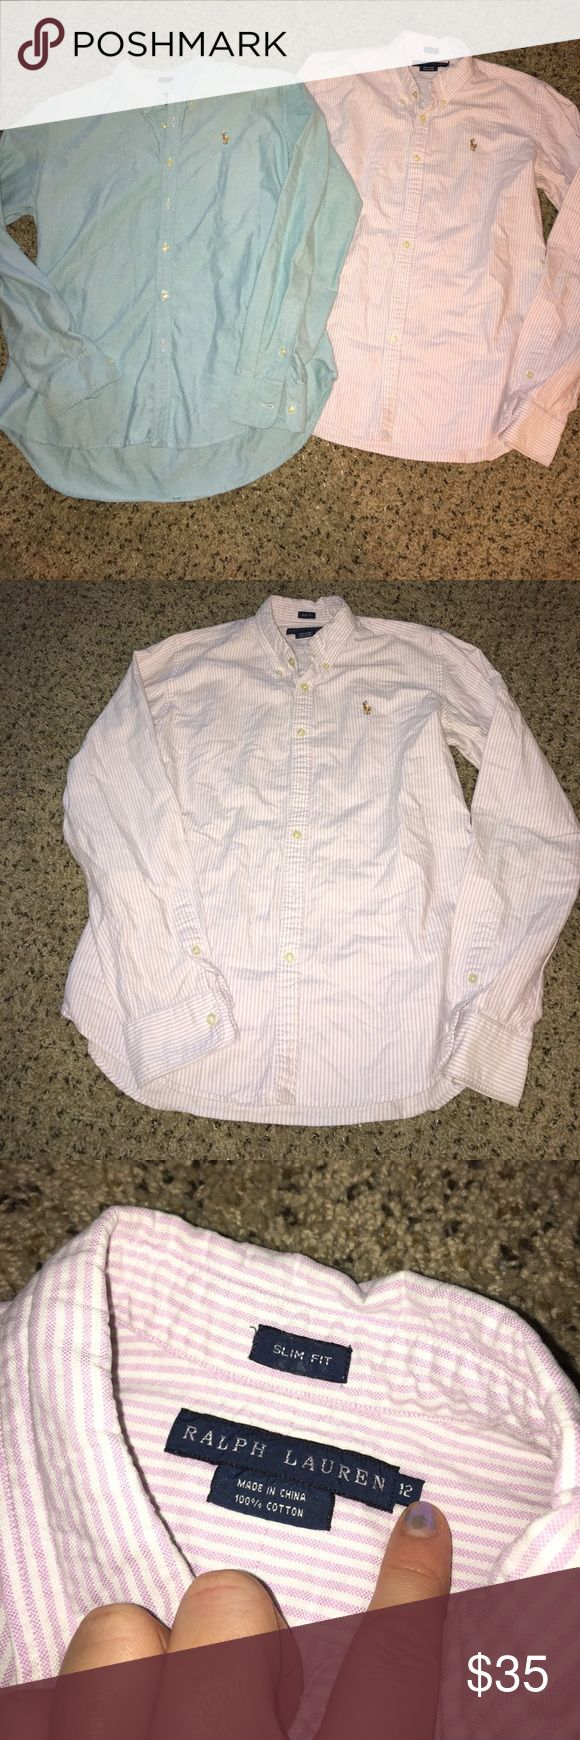 Polo Ralph Lauren slim fit button downs 2 Polo Ralph Lauren ladies button down slim fit shirts. Both size 12 - both in excellent condition - both slim fit. One is lavender and white striped. The second is a green/blue color. Polo by Ralph Lauren Tops Button Down Shirts